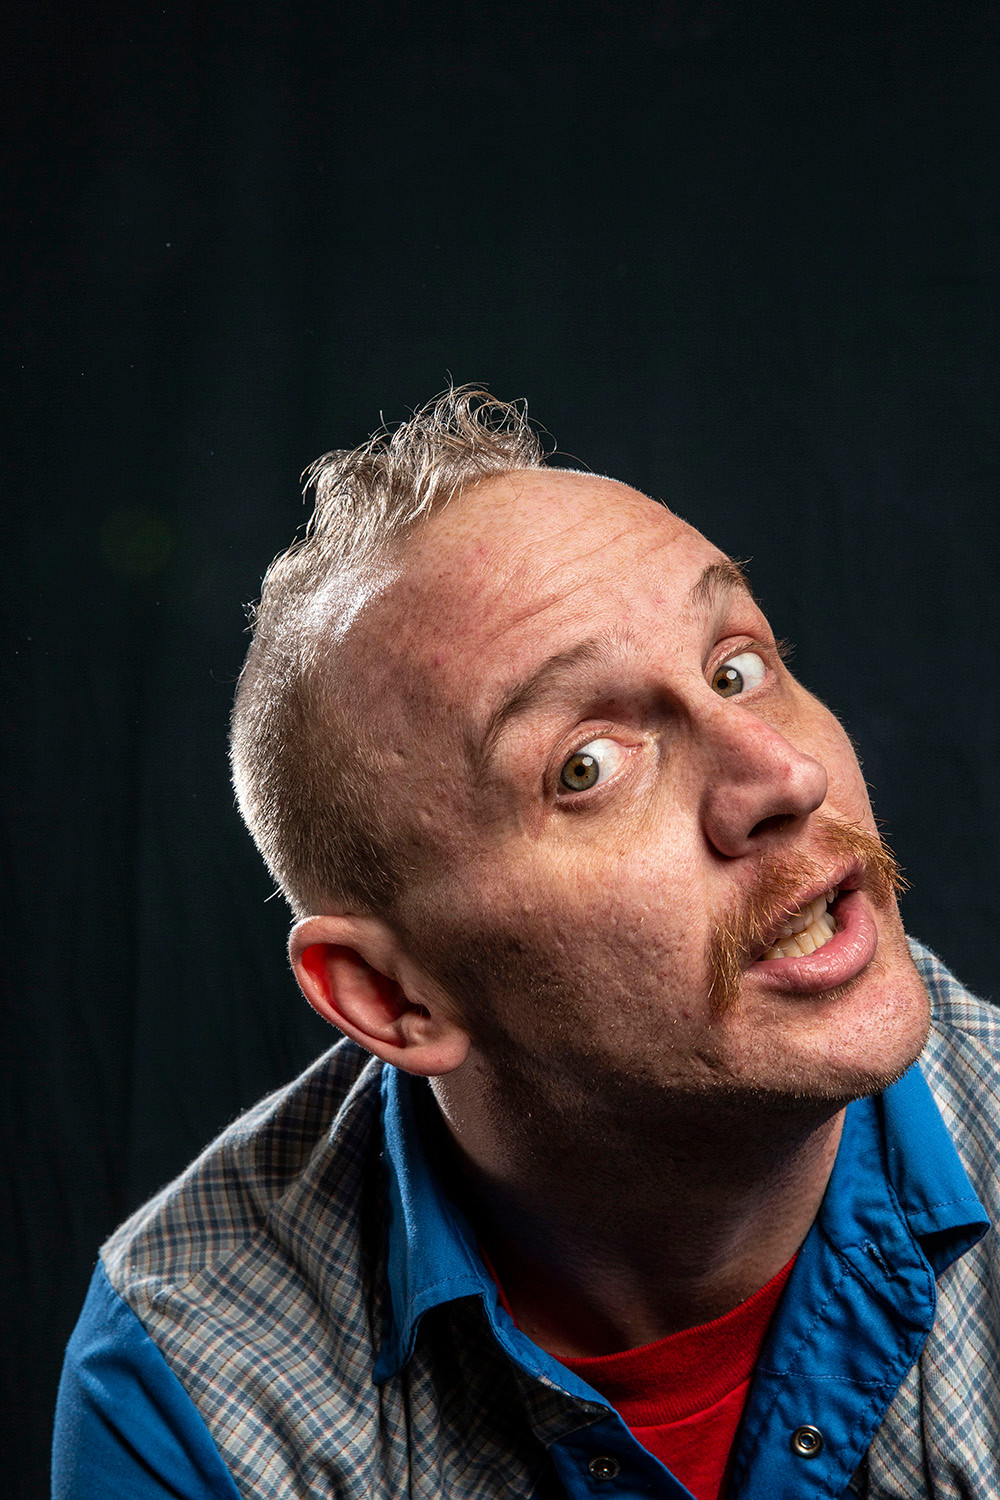 comedian Nate Barron tilts his head and gives a goofy look